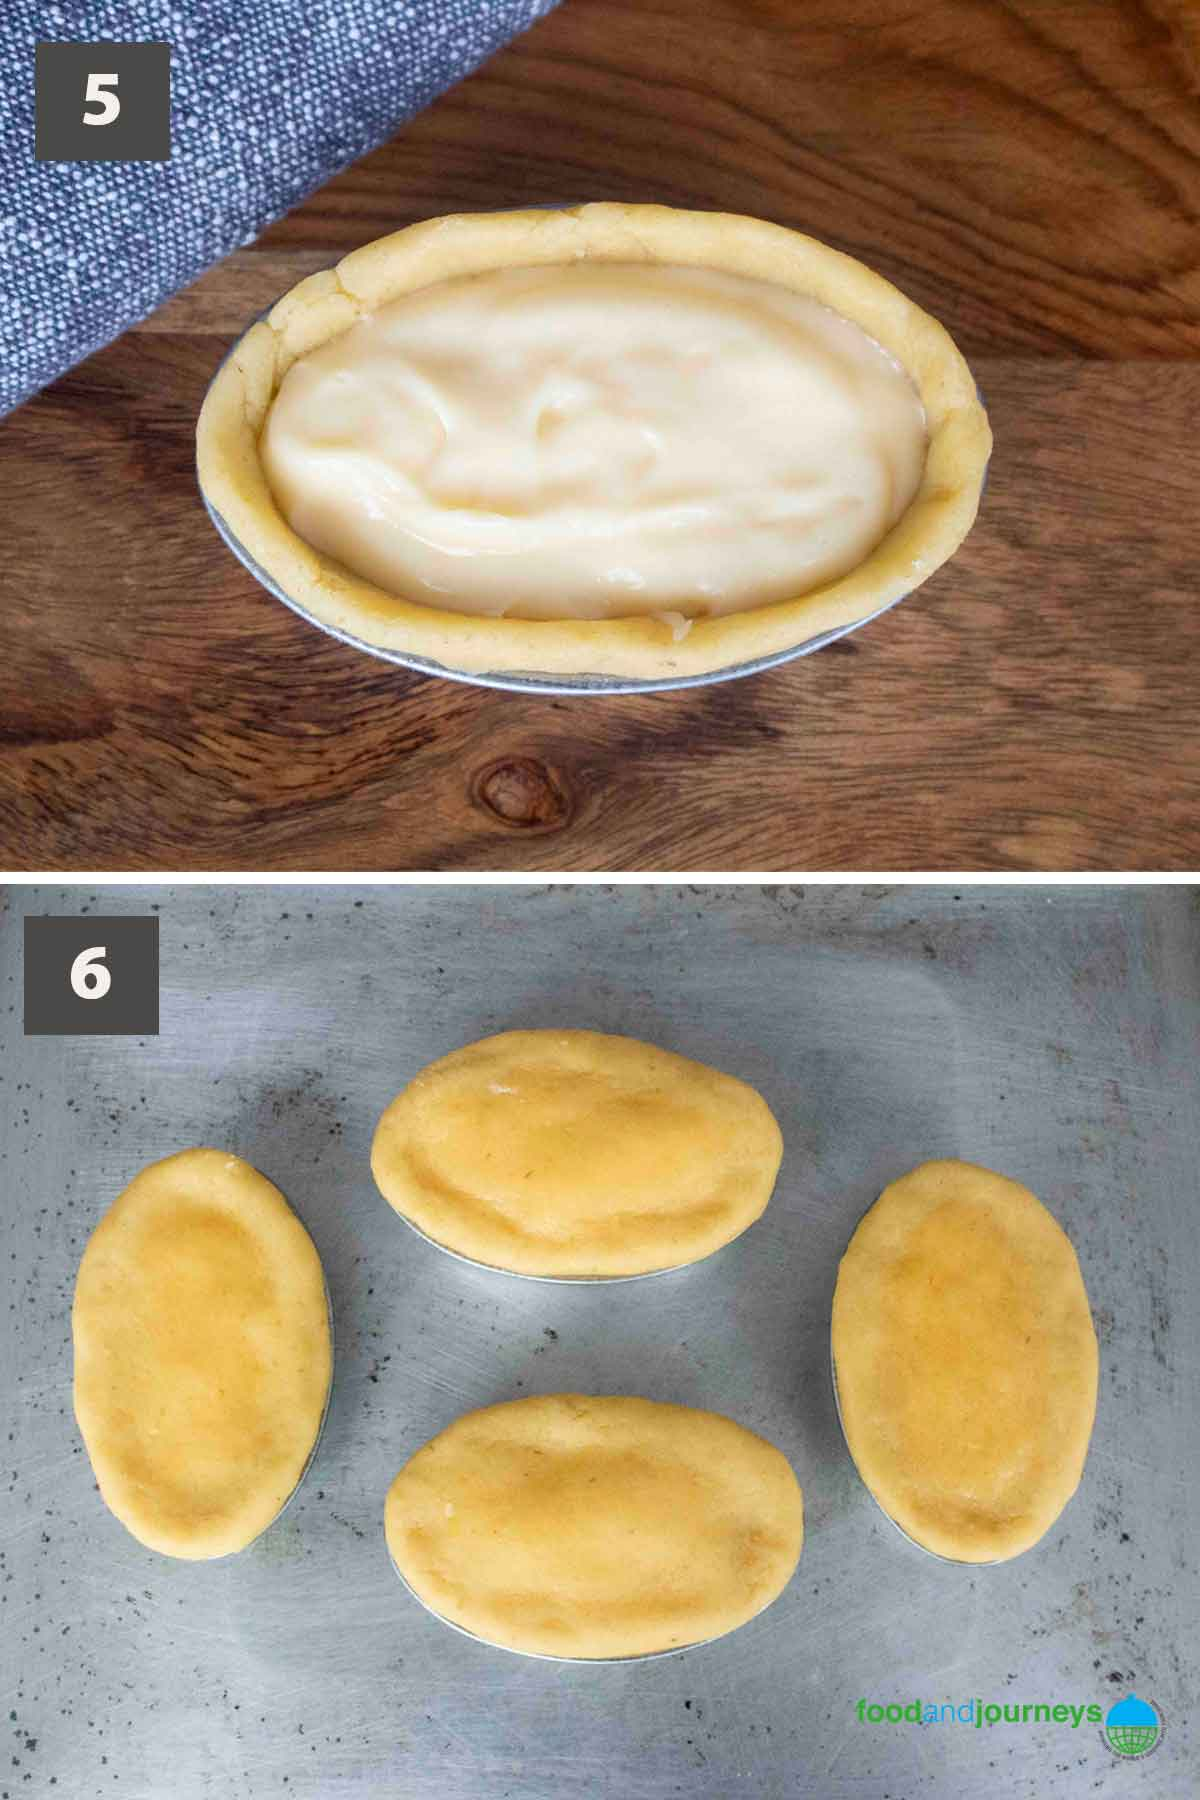 Updated second part of a collage of images showing the step by step process of making pasticciotto at home.